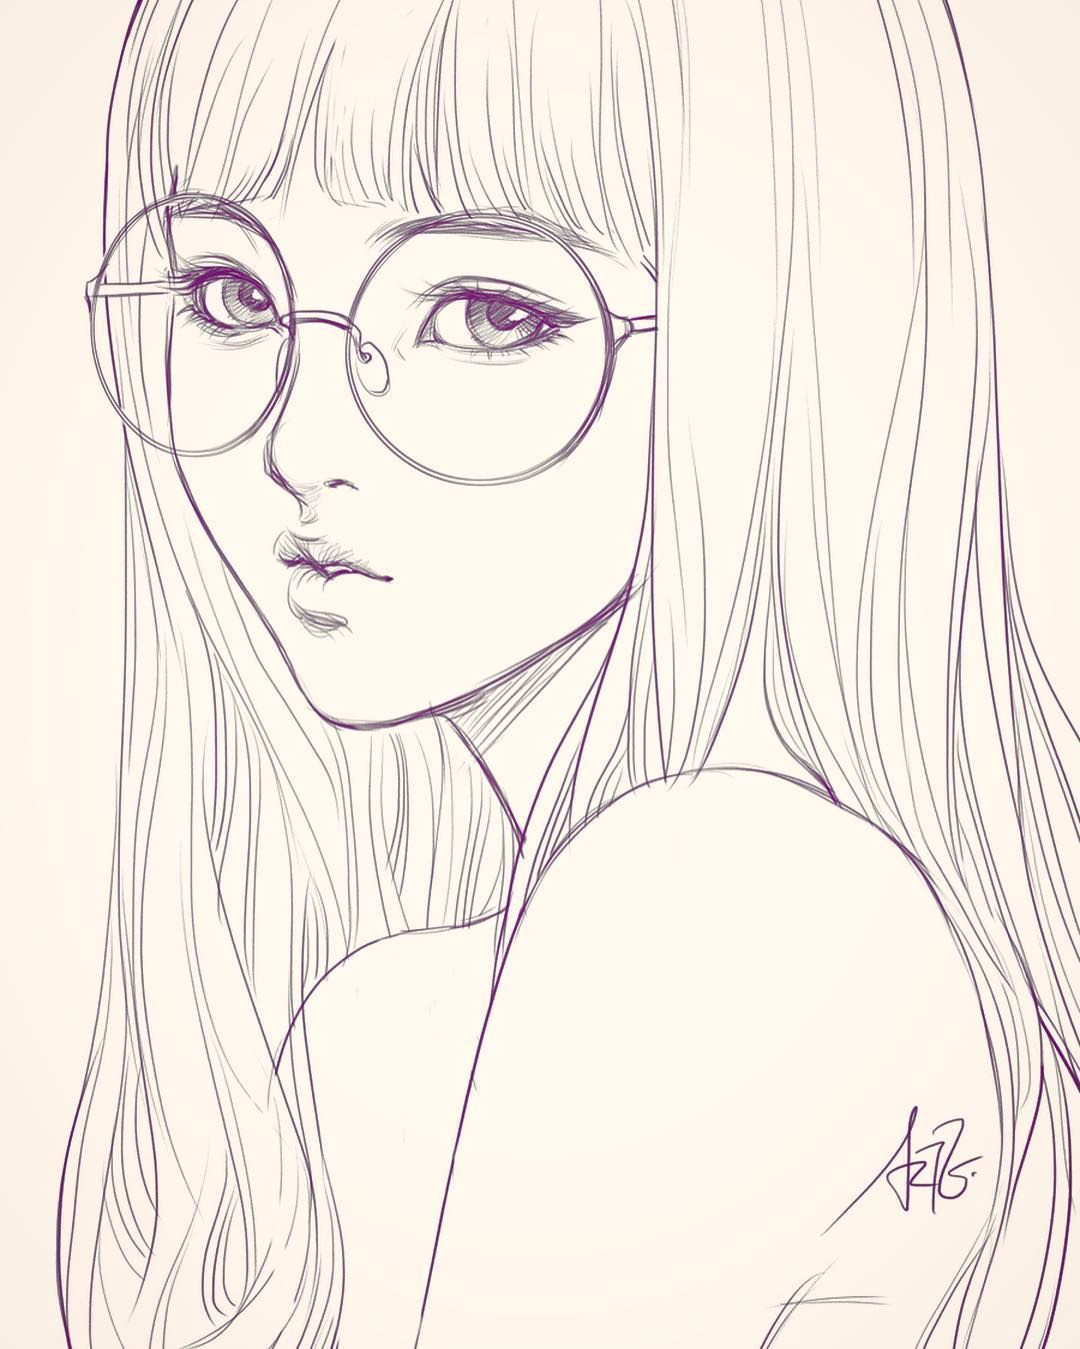 Cute Drawing Of A Girl with Glasses Last Sketch Of Girl with Glasses Having Bad Backache It Hurts